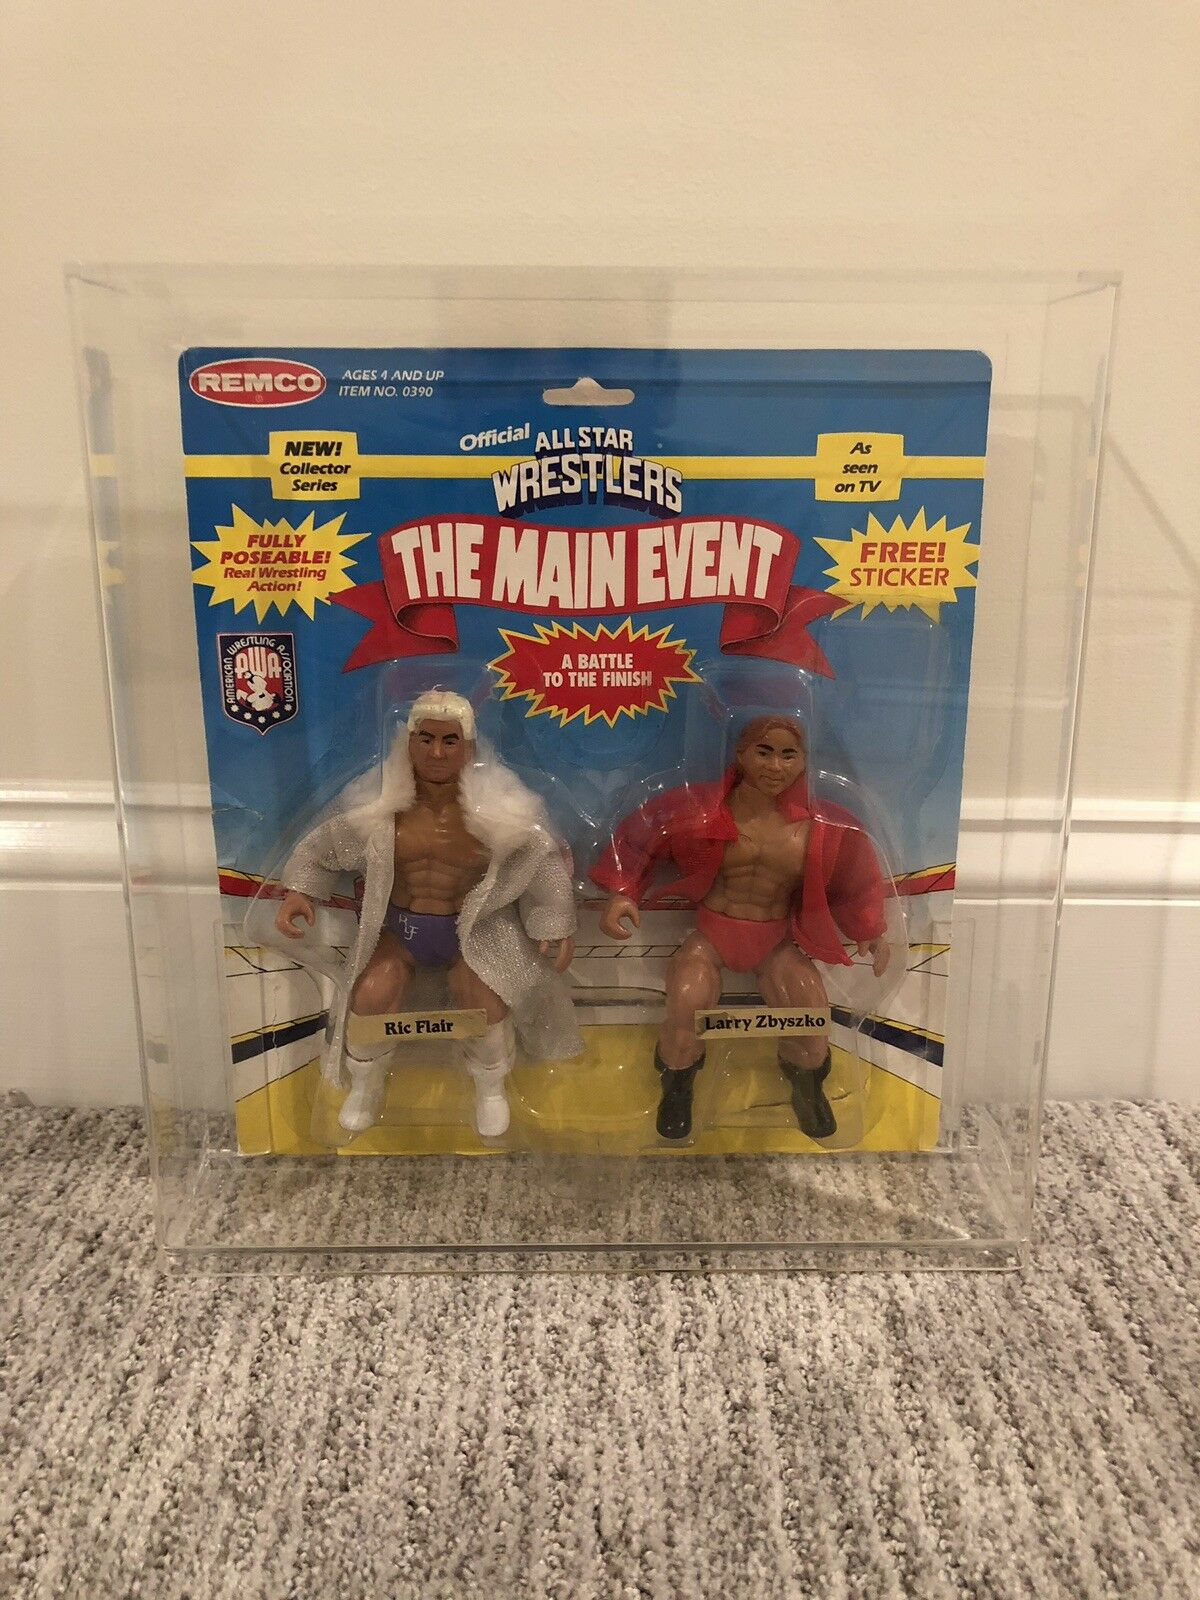 Ric Flair & Larry Zbyszko Remco AWA Wrestling Figures with Acrylic Case.